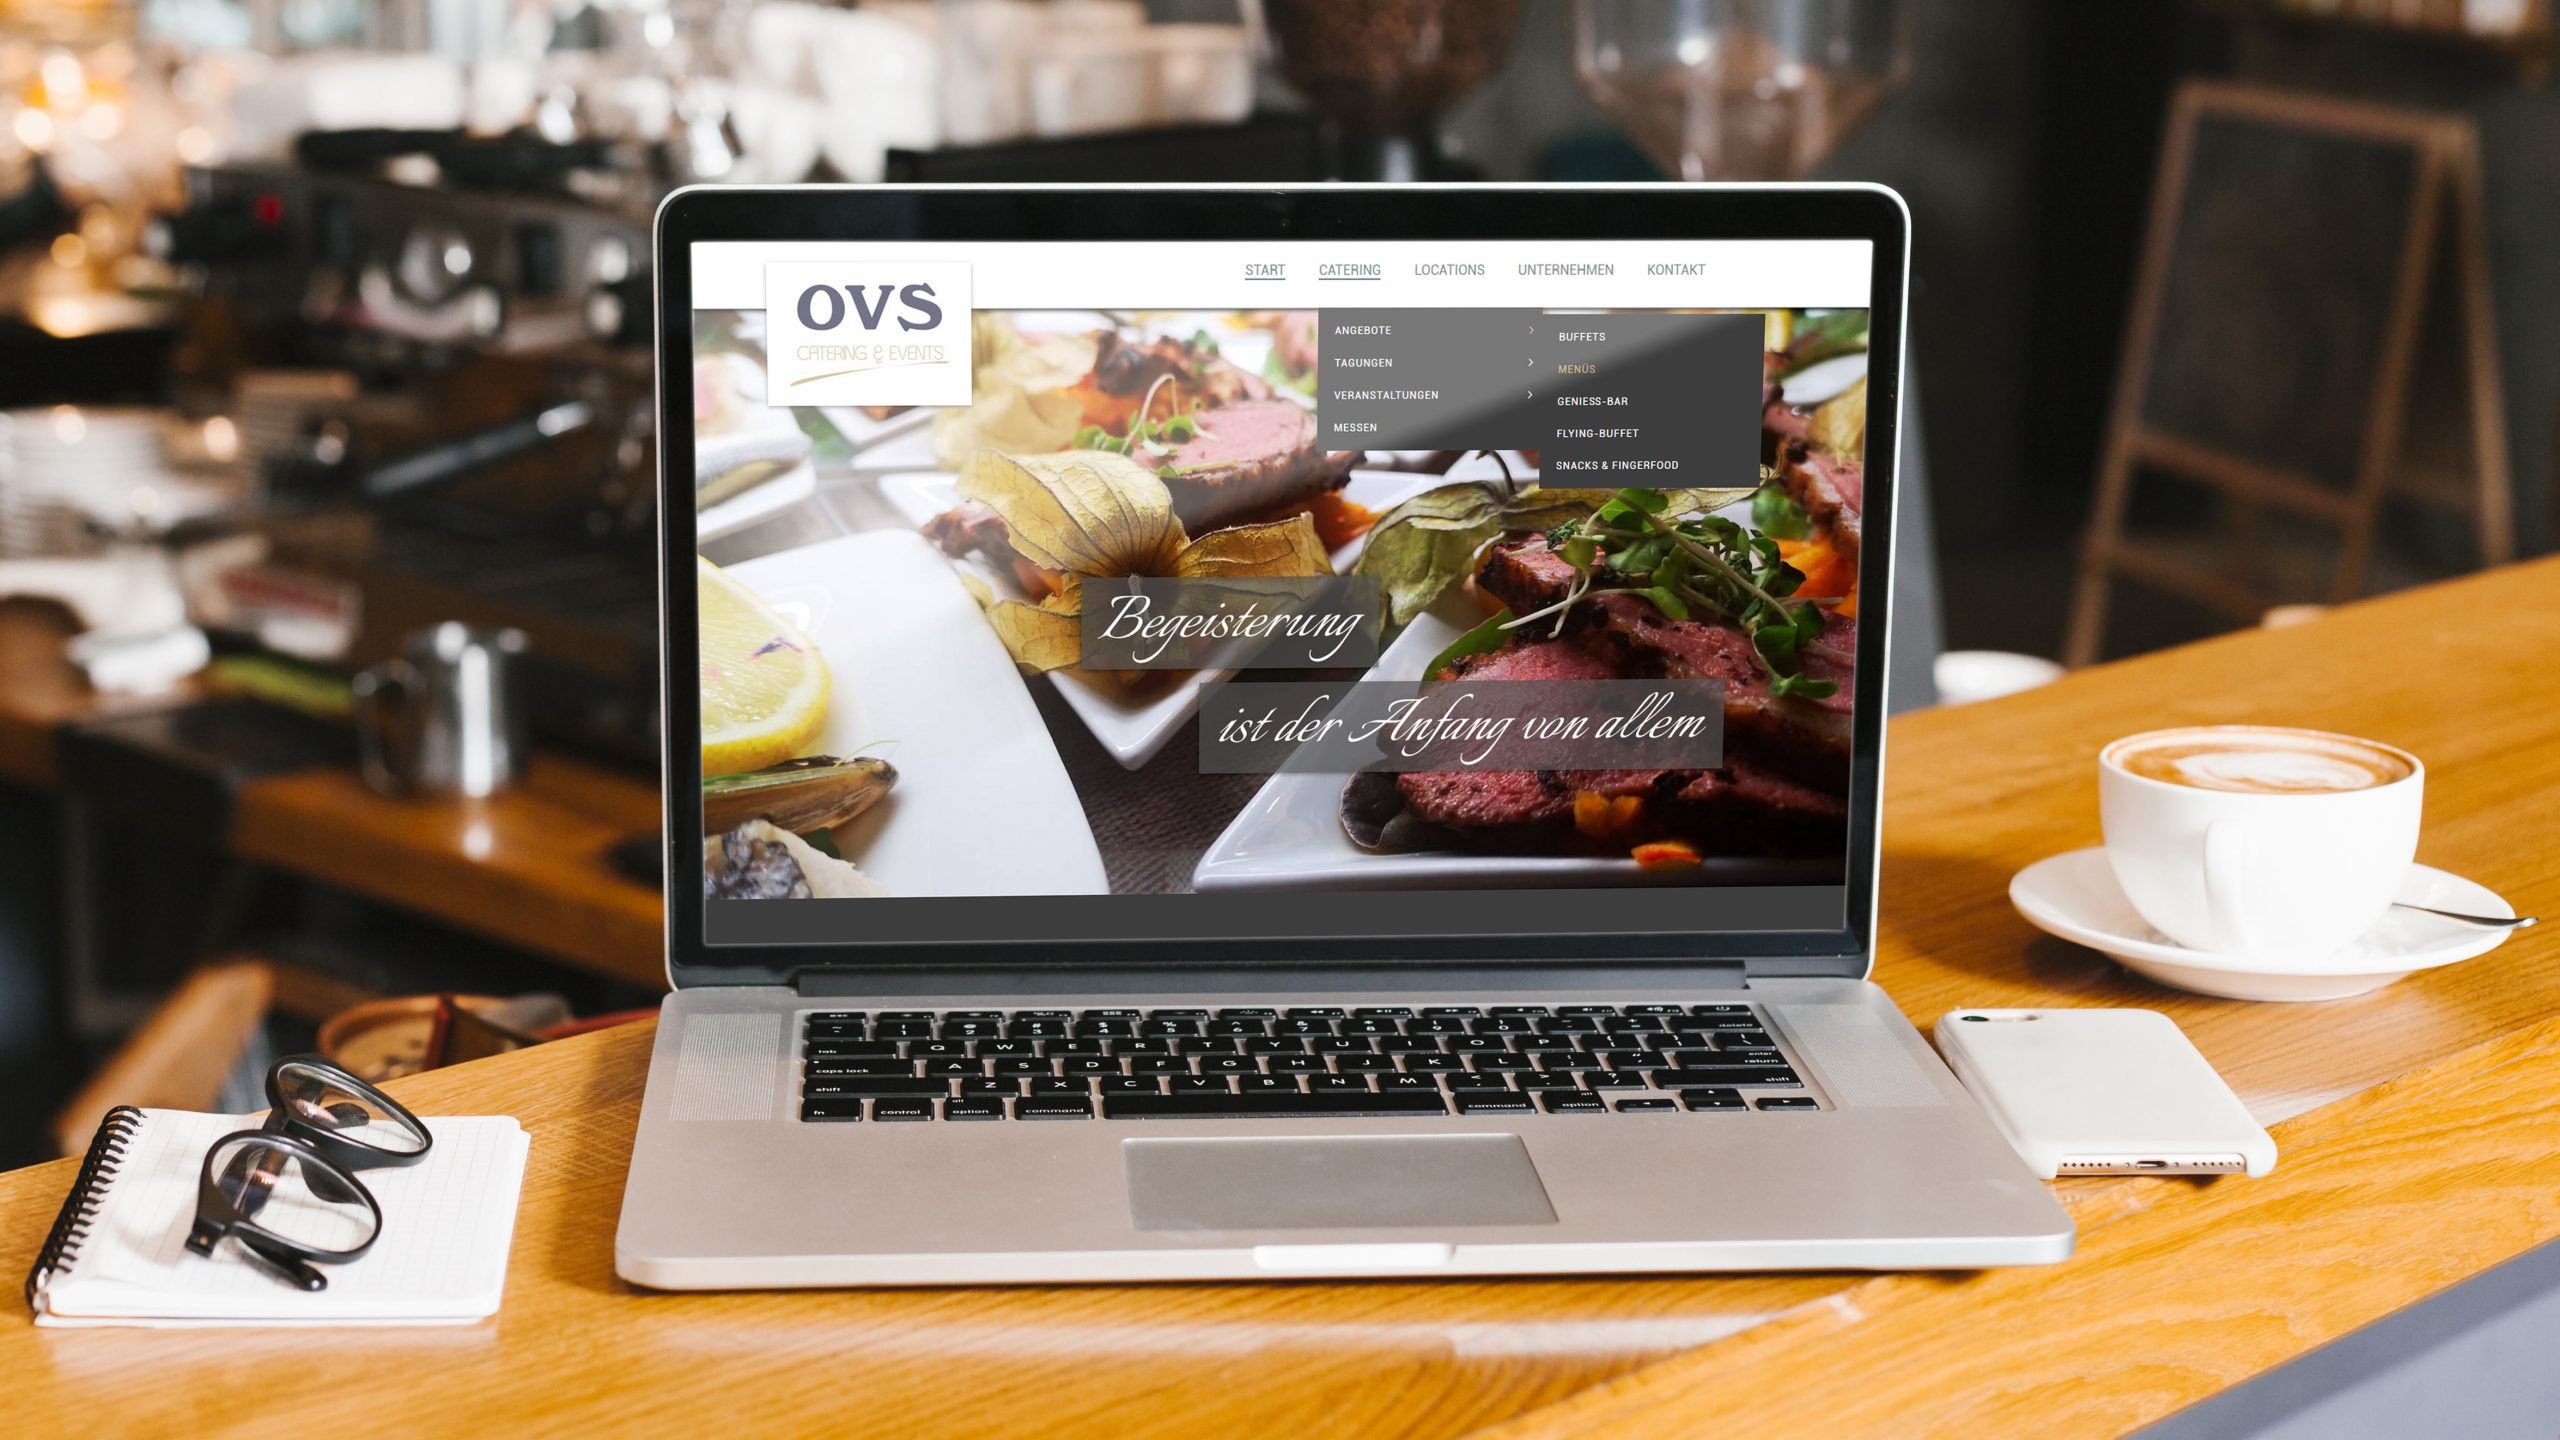 OVS Catering